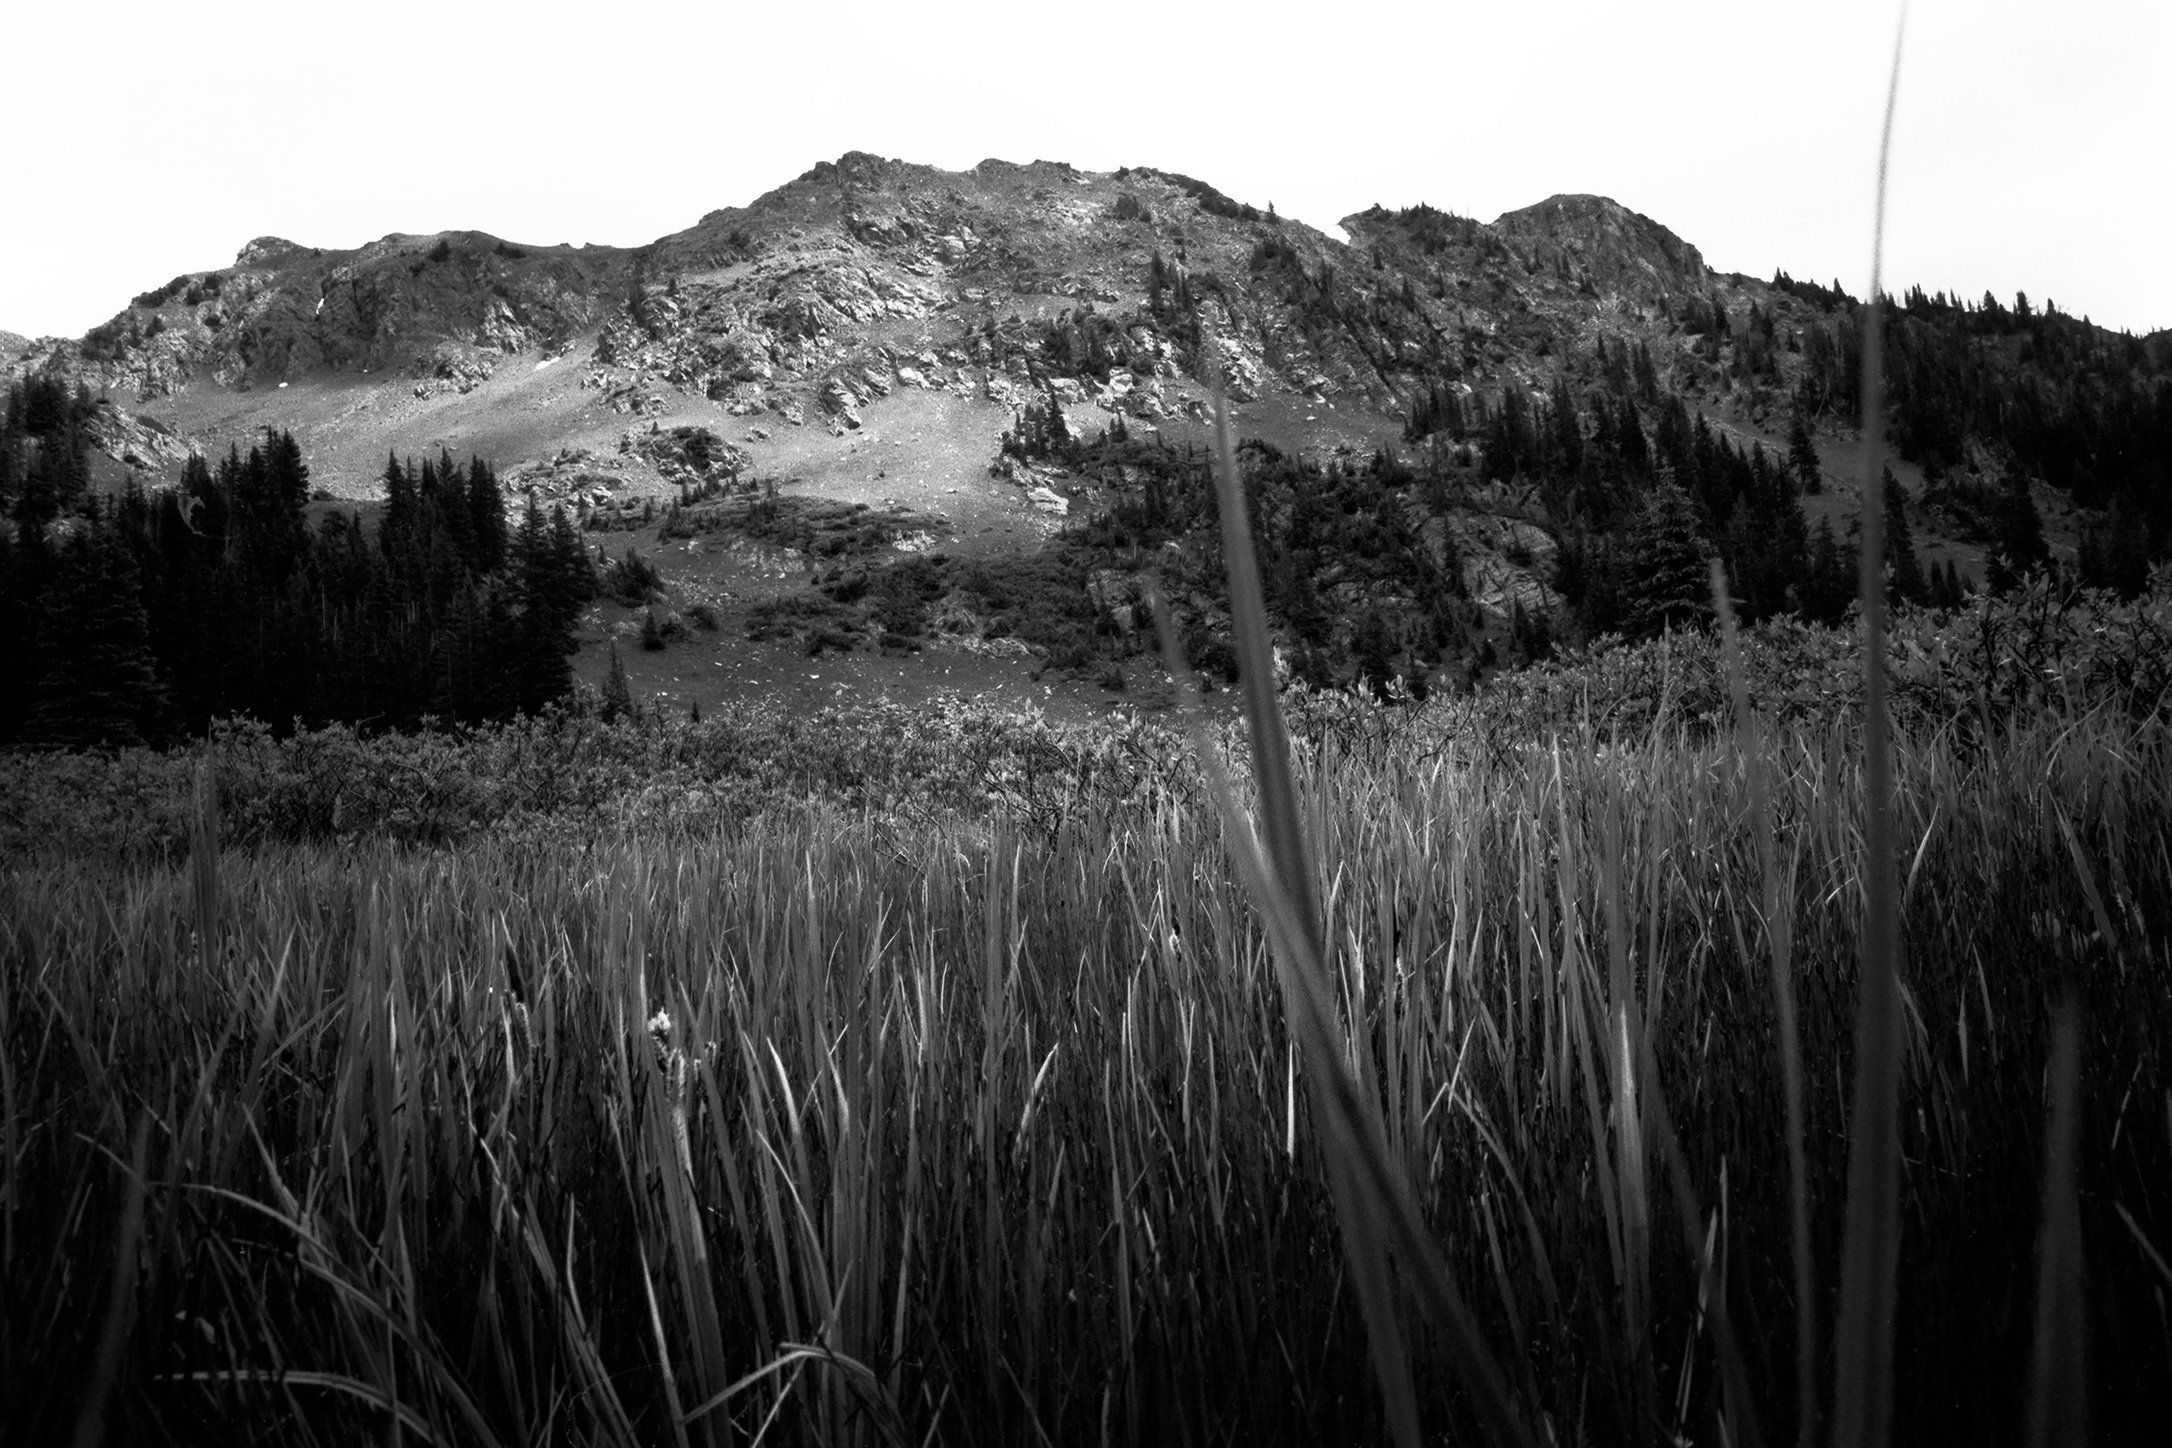 0001_Bowen Parika Mountains, Colorado, Summer 2015. Scan #30.tif